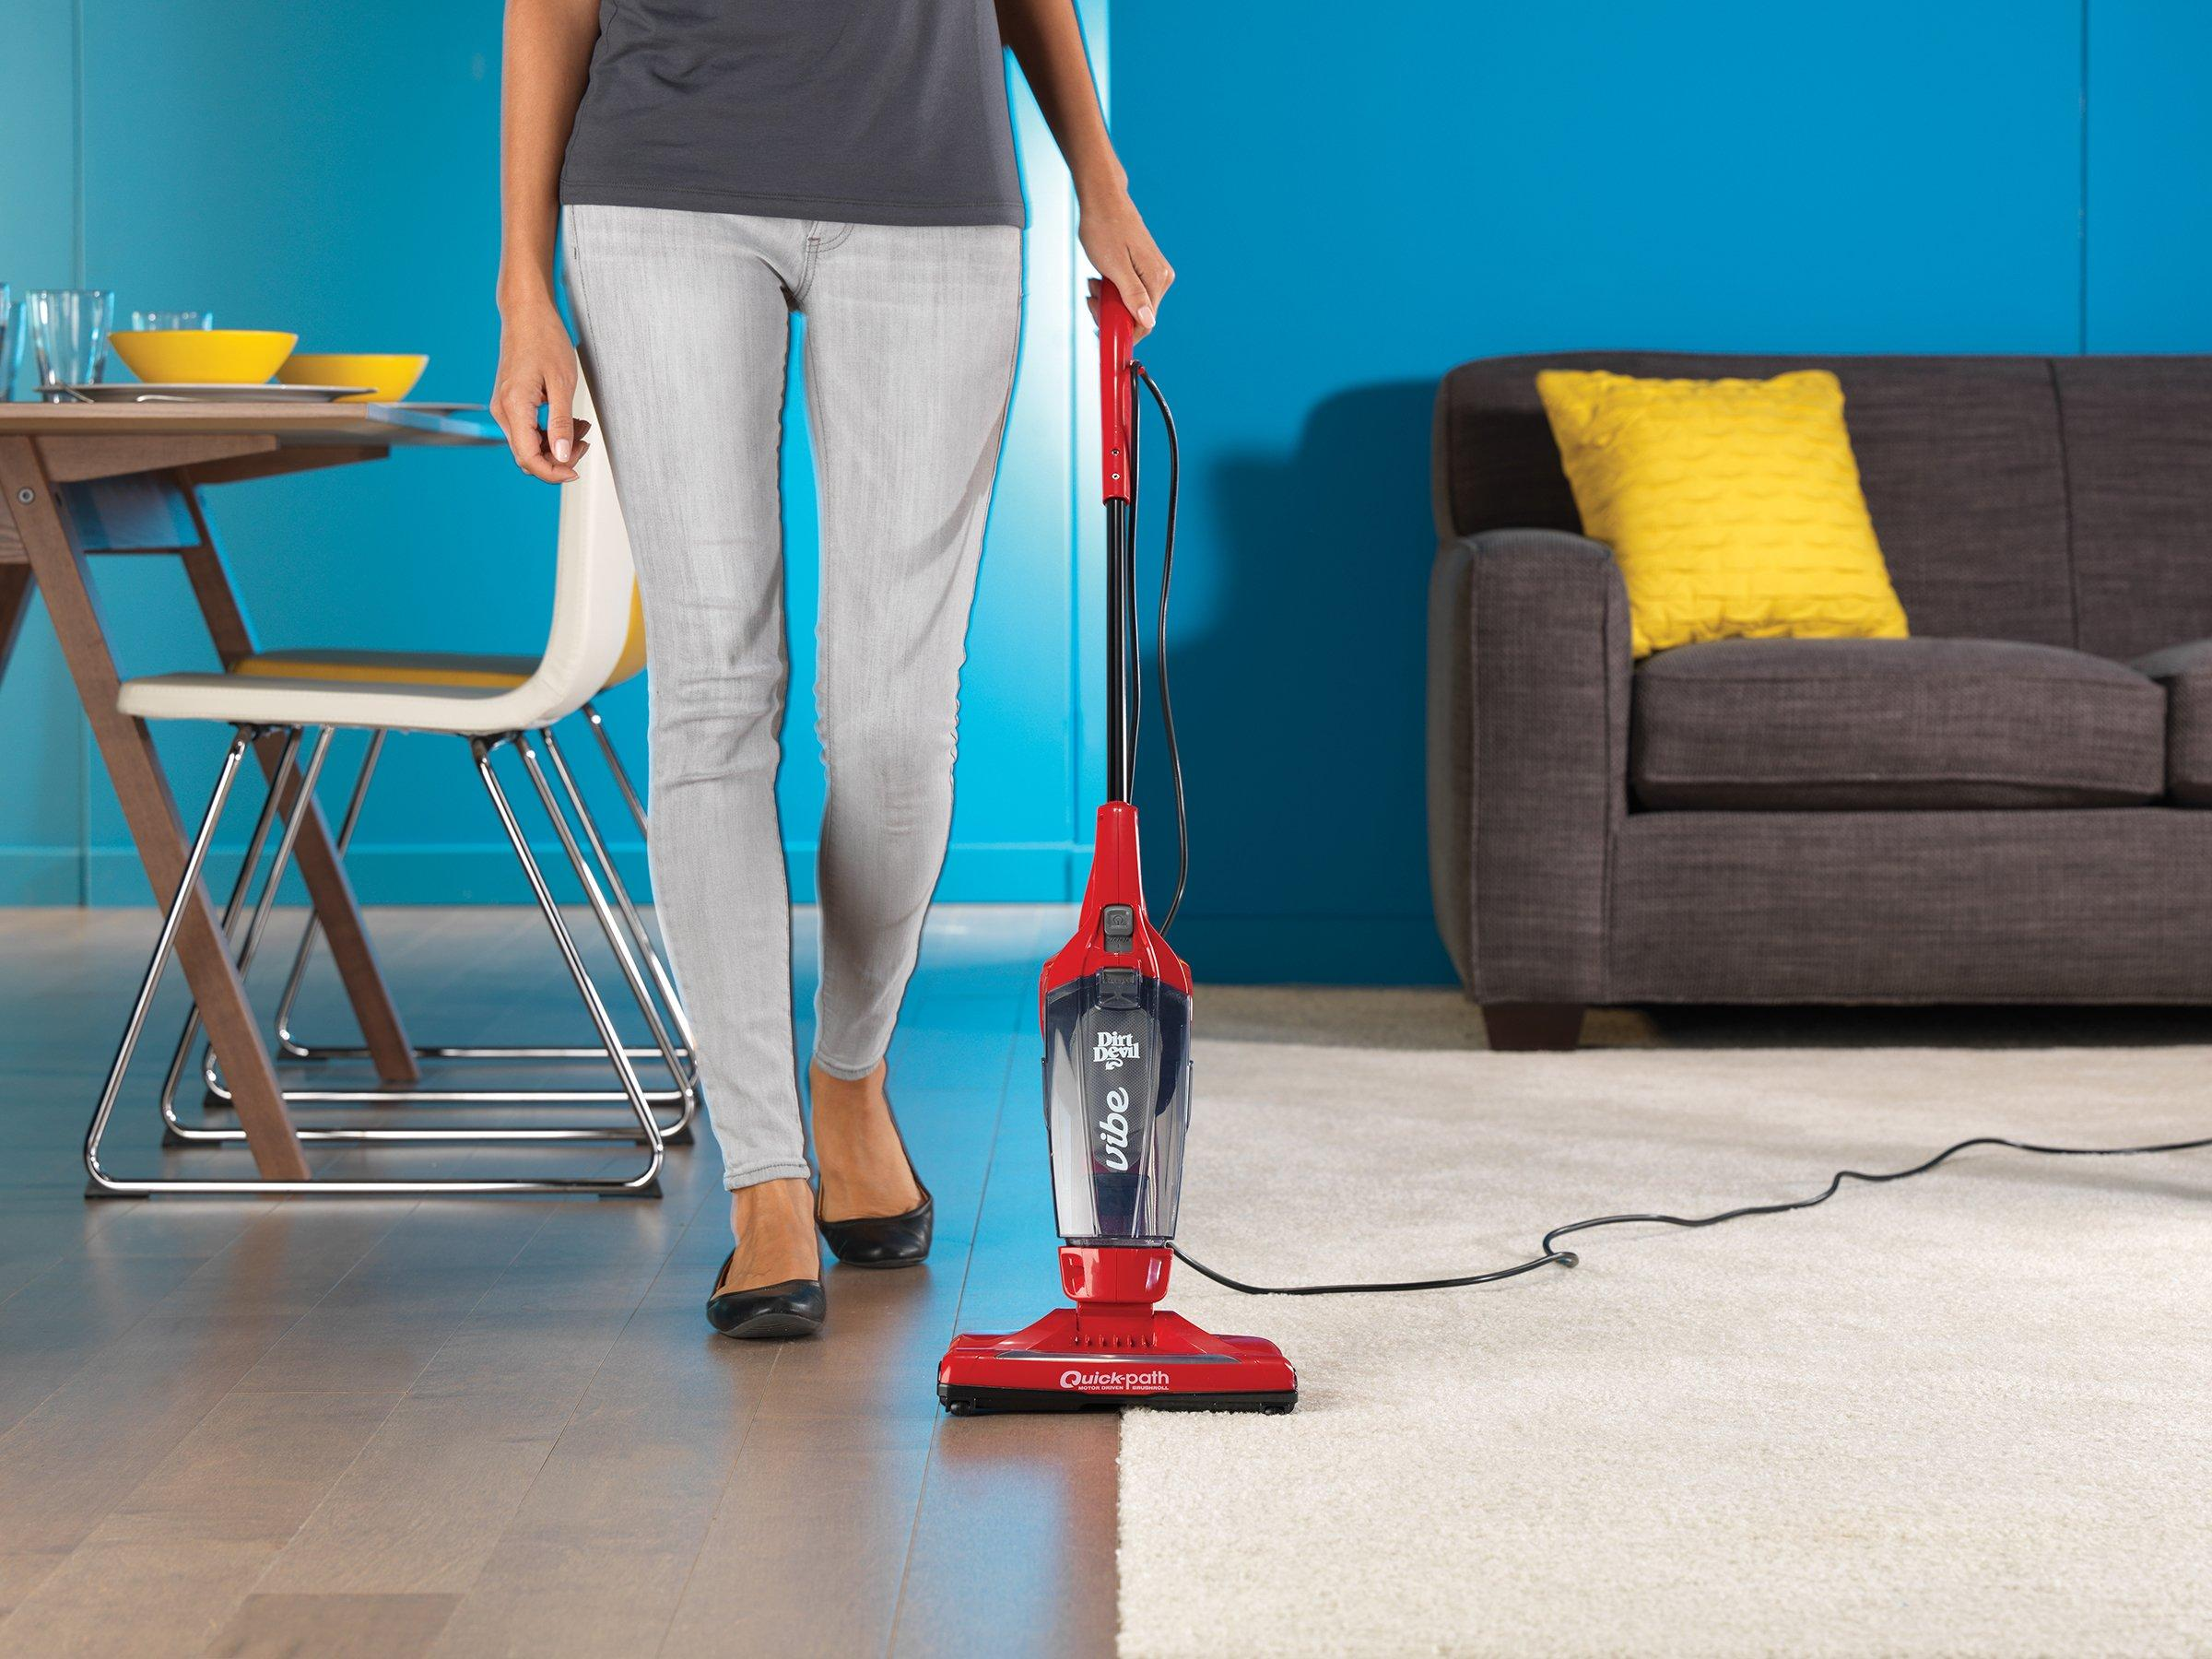 Vibe 3-in-1 Corded Bagless Stick Vacuum5